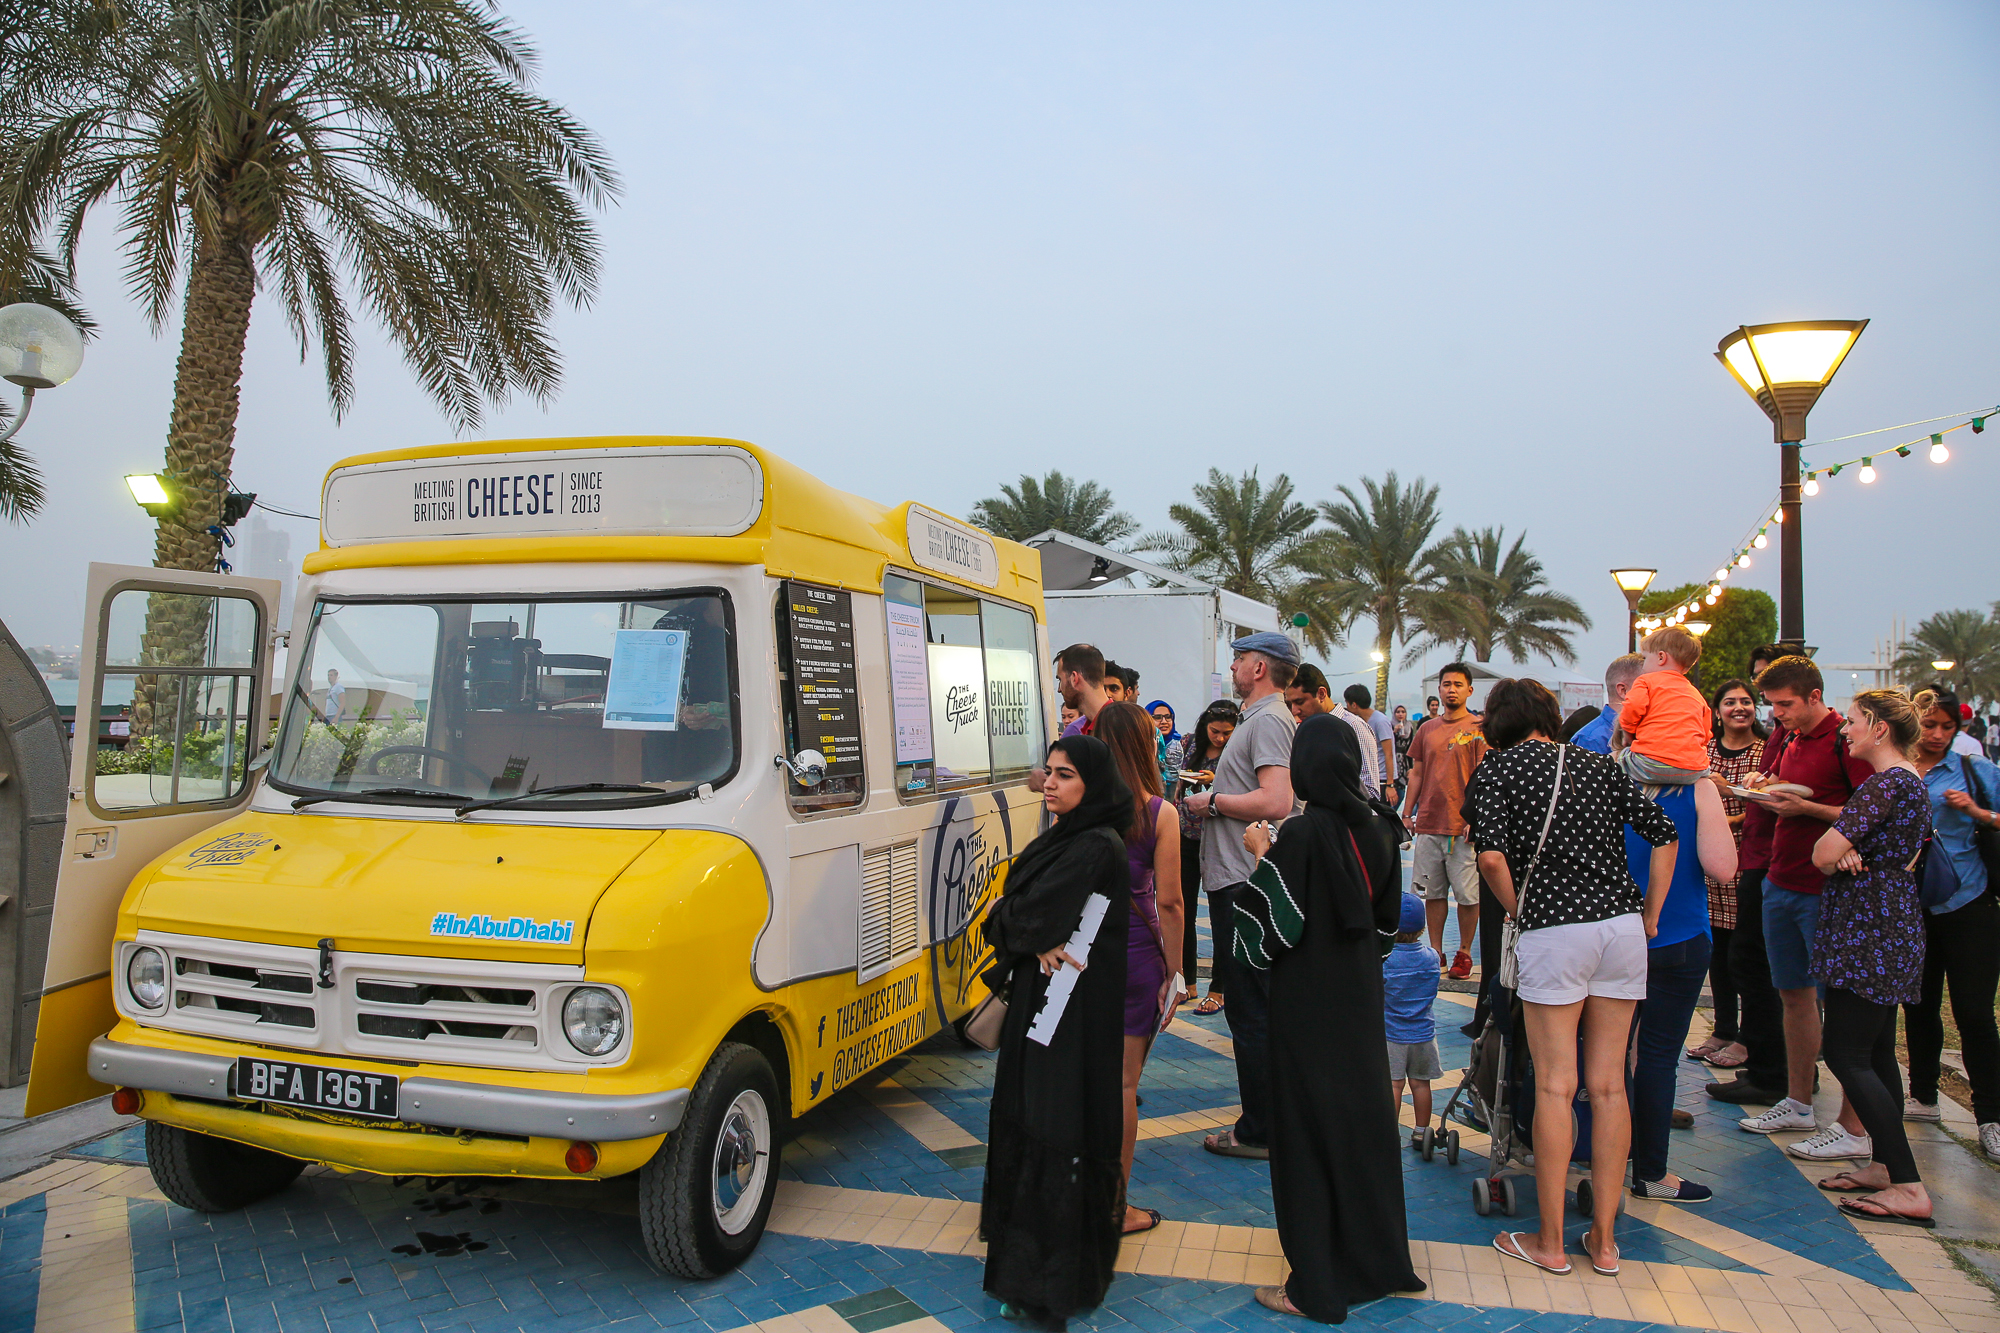 The Cheese truck attracts foodies